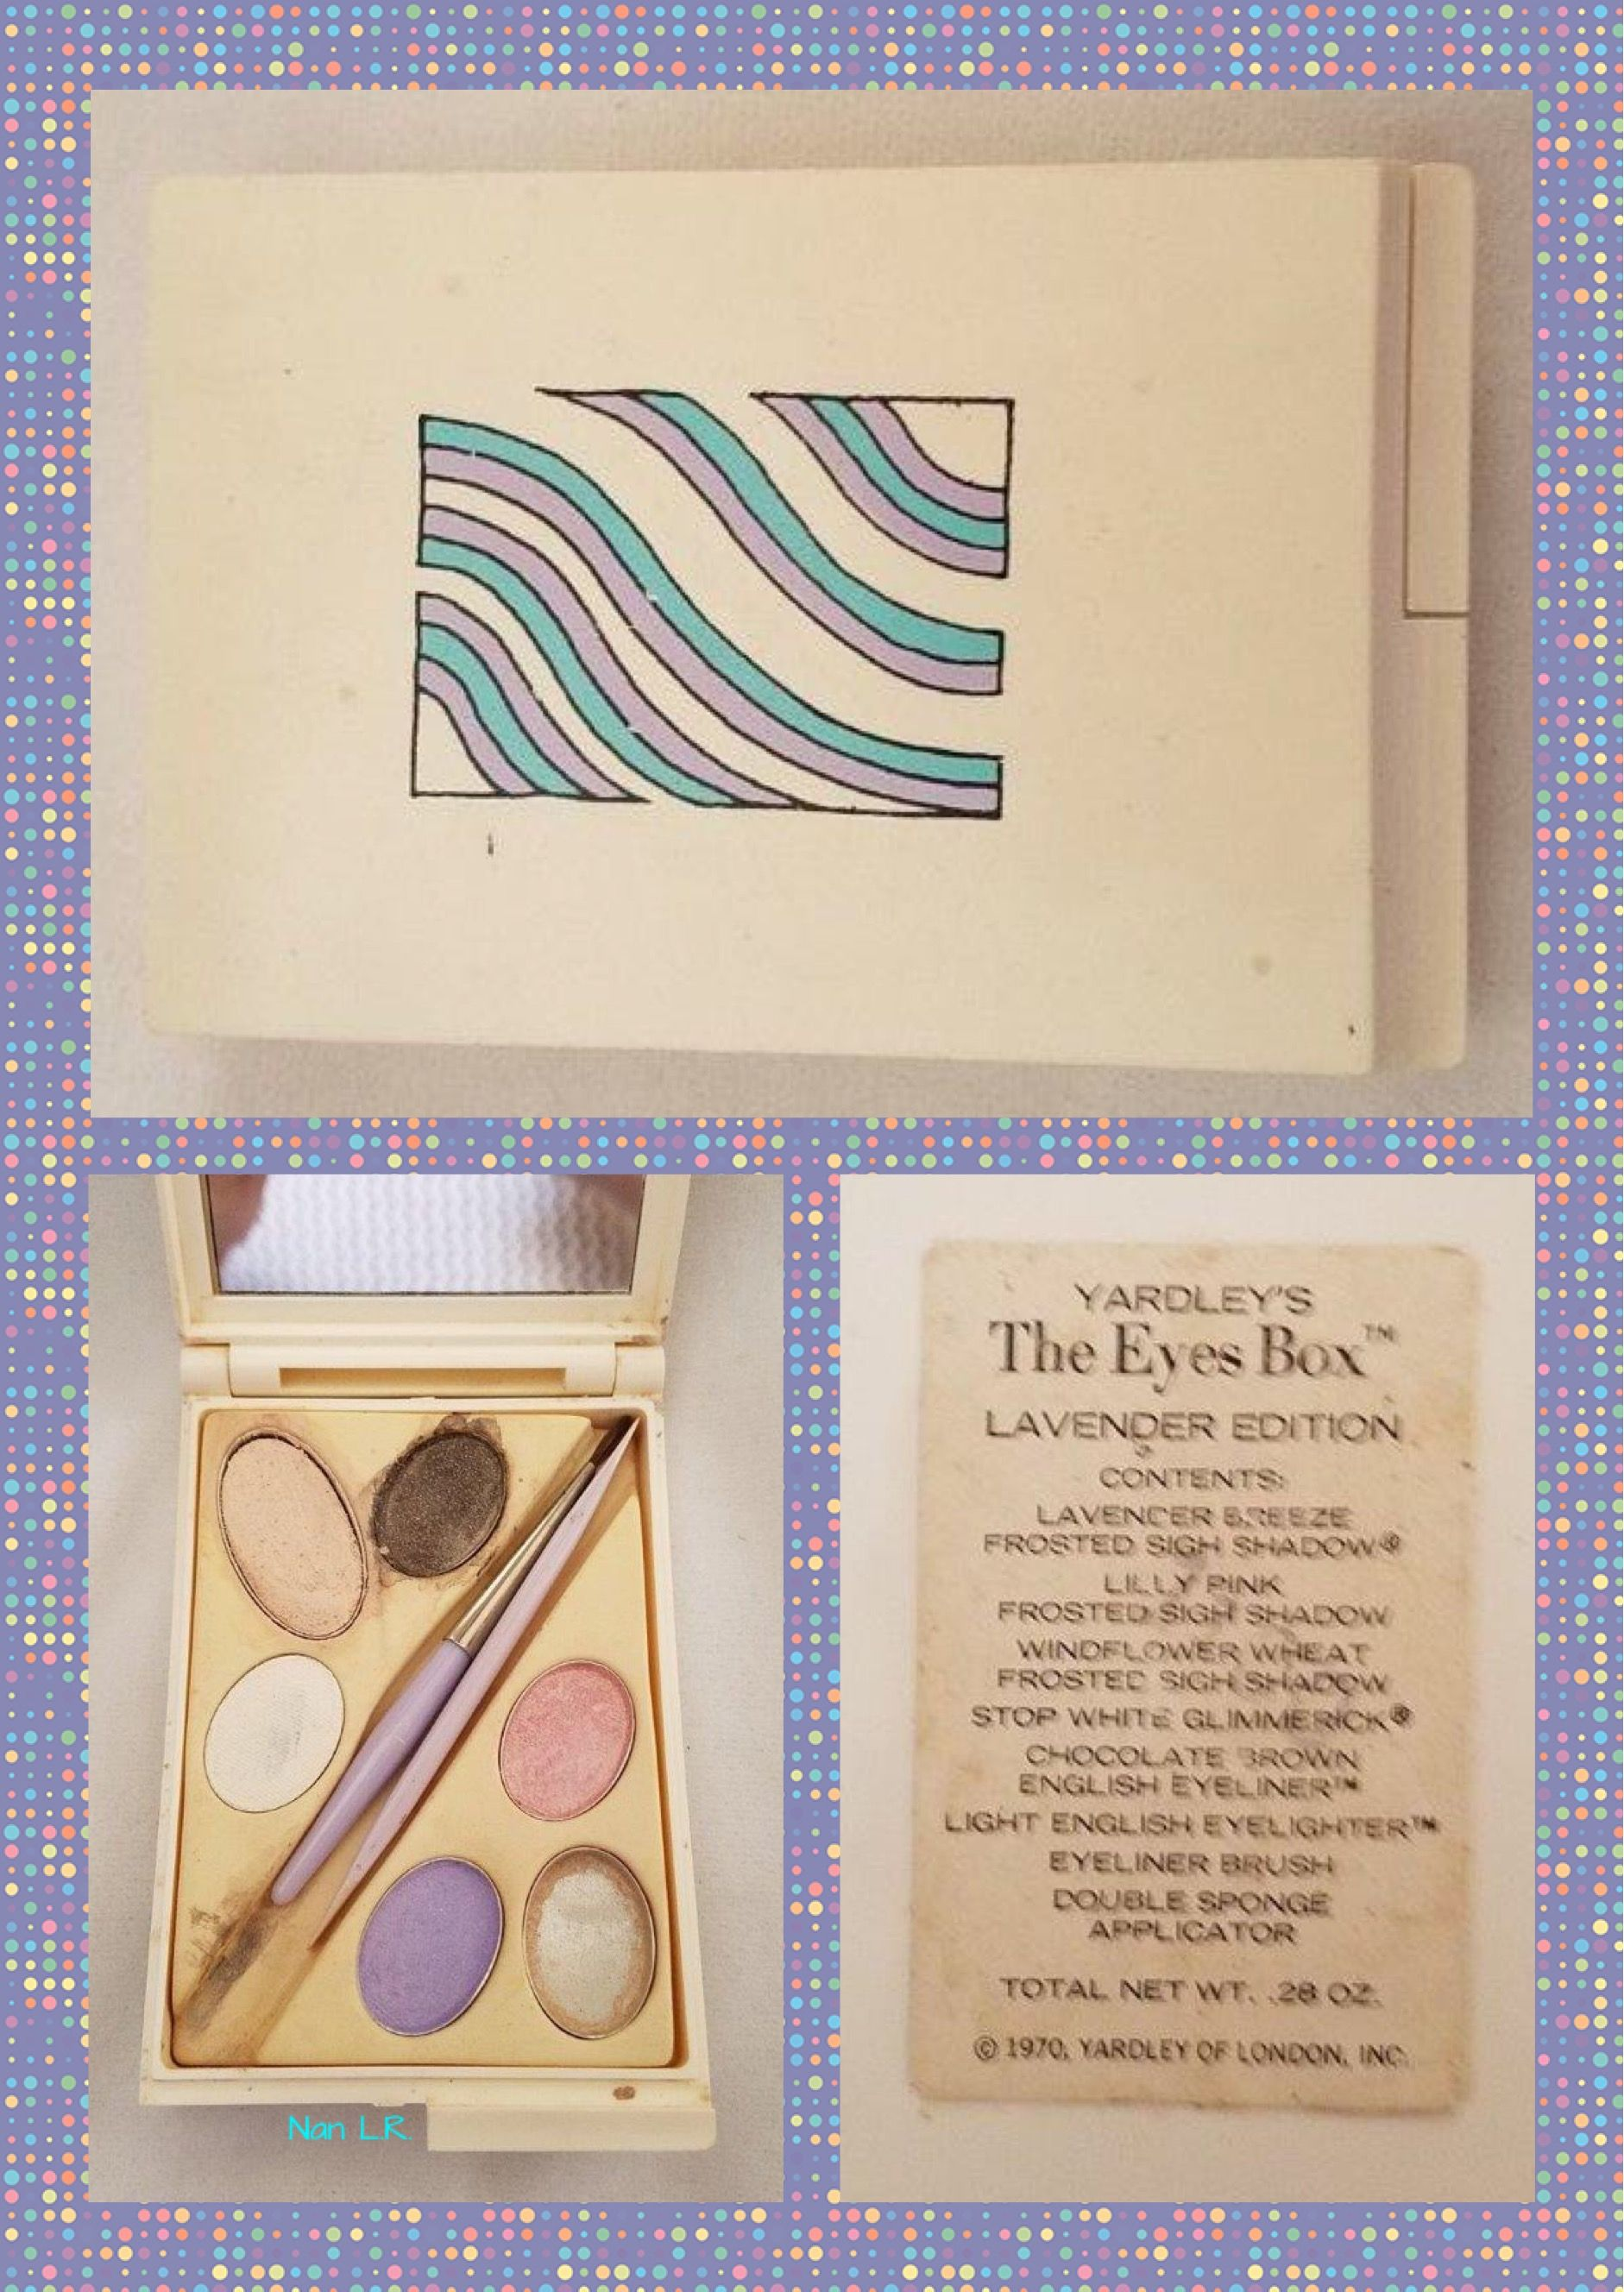 1970 Yardley The Eyes Box LAVENDER Edition. Sold for 26